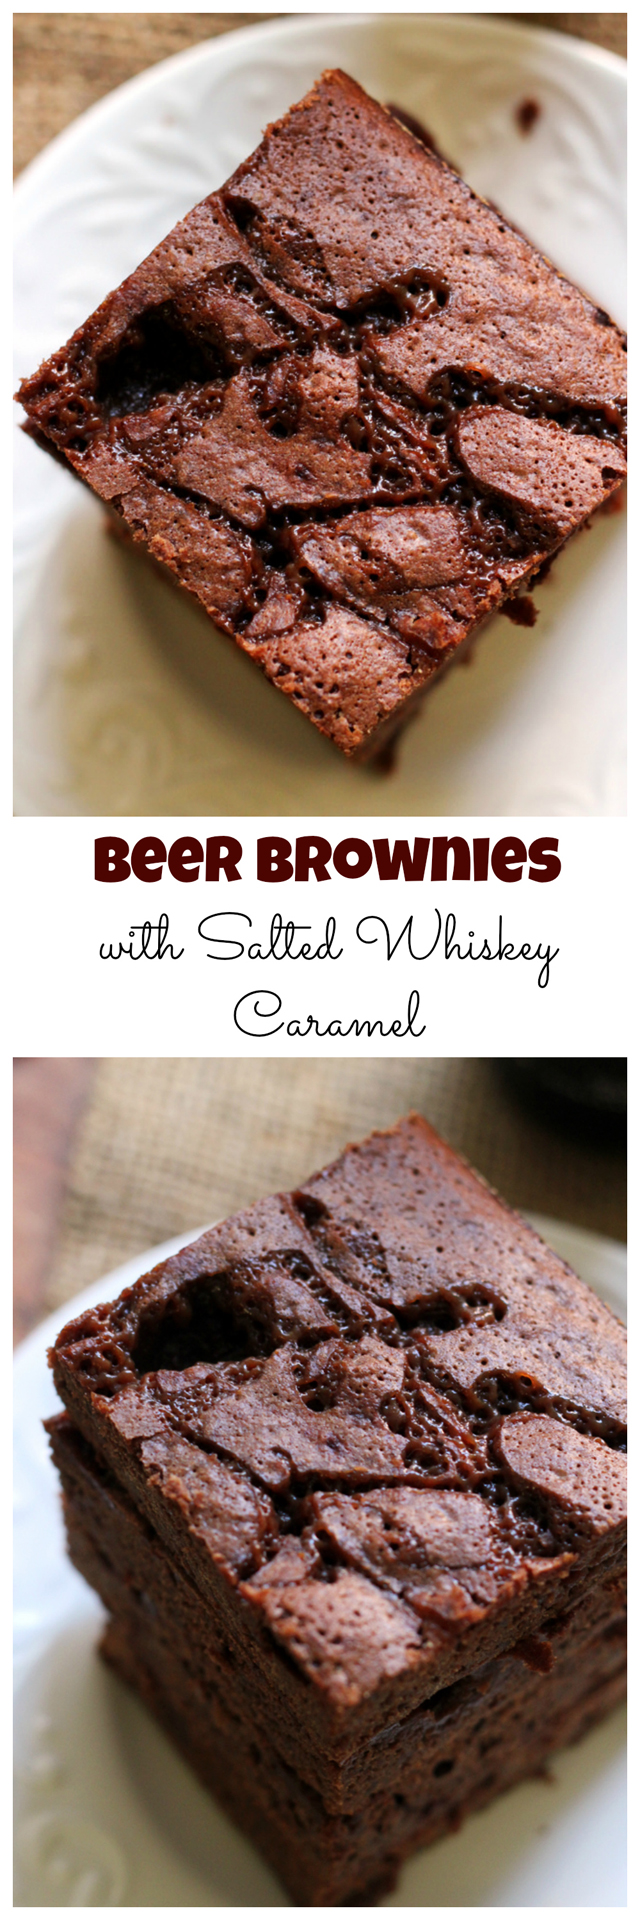 beer brownies with salted whiskey caramel